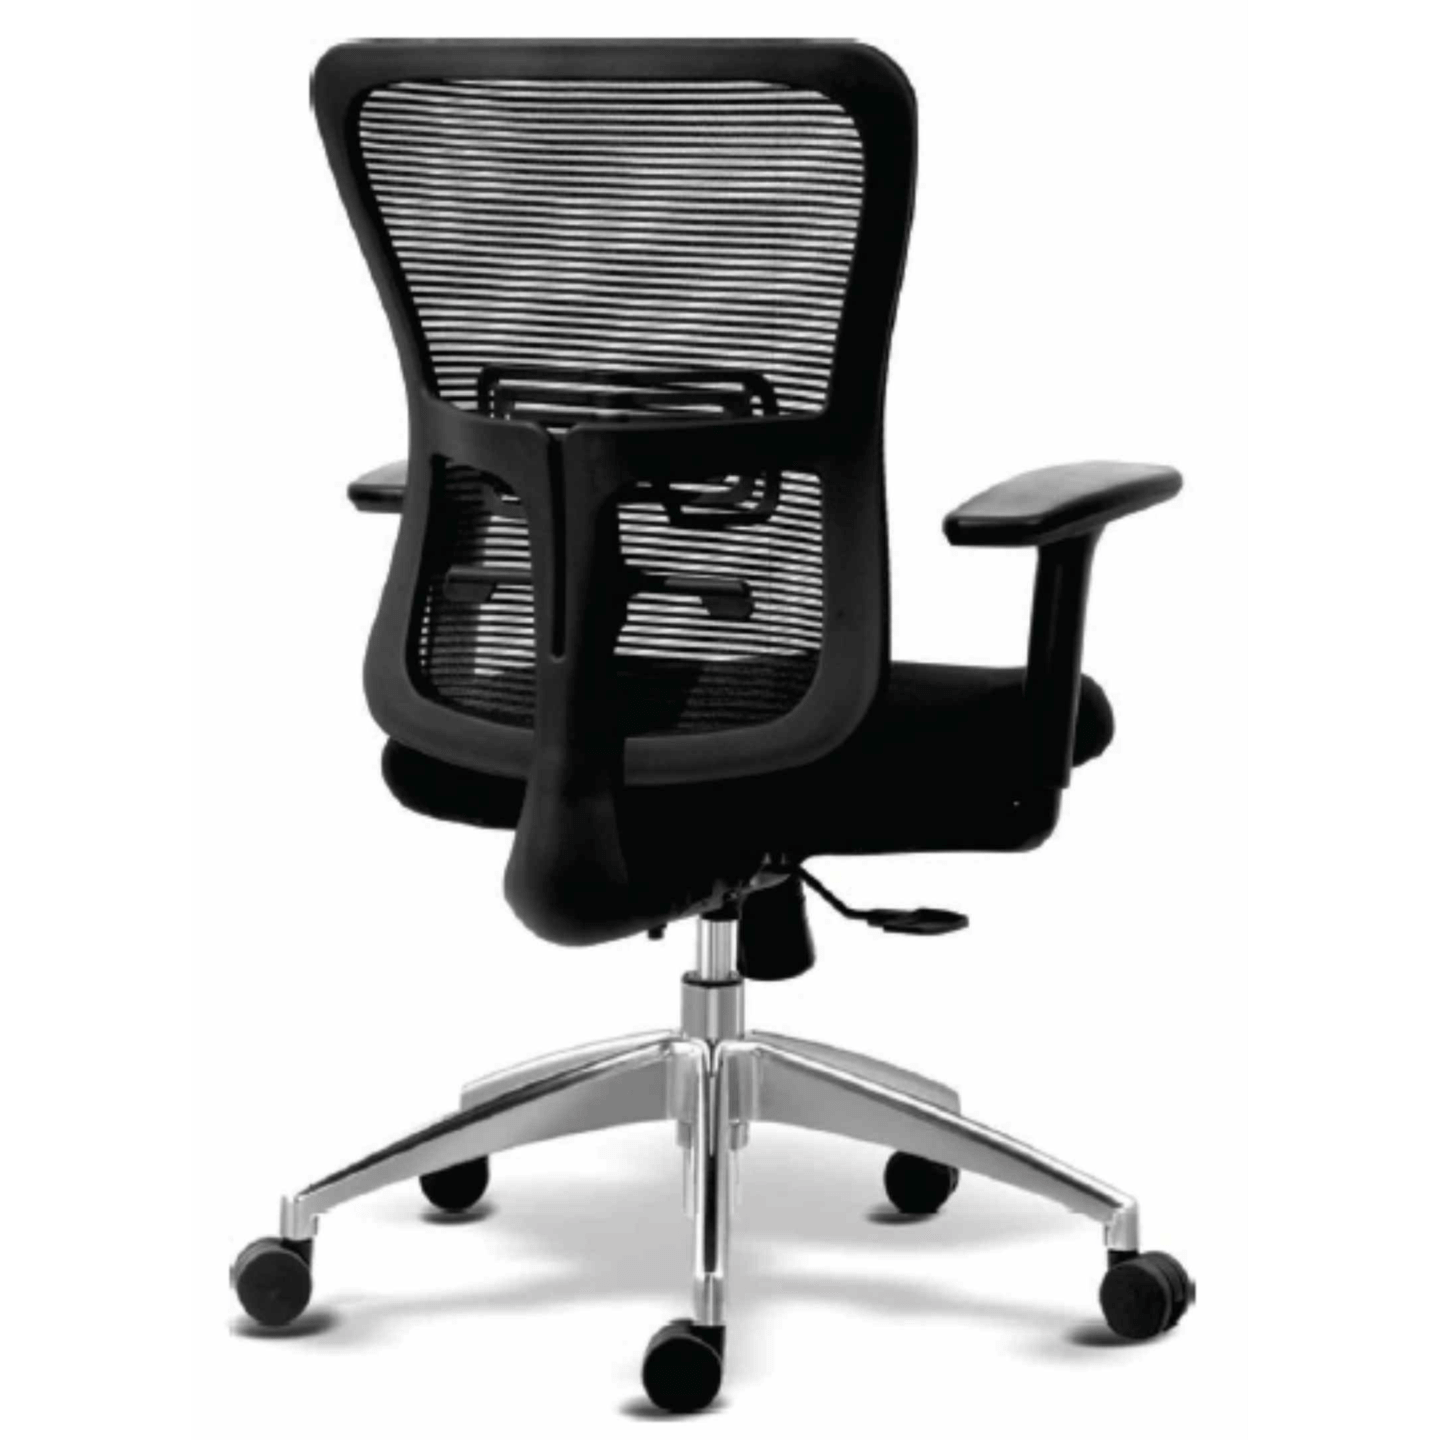 Ergonomic Home Office Chair Model - Volga